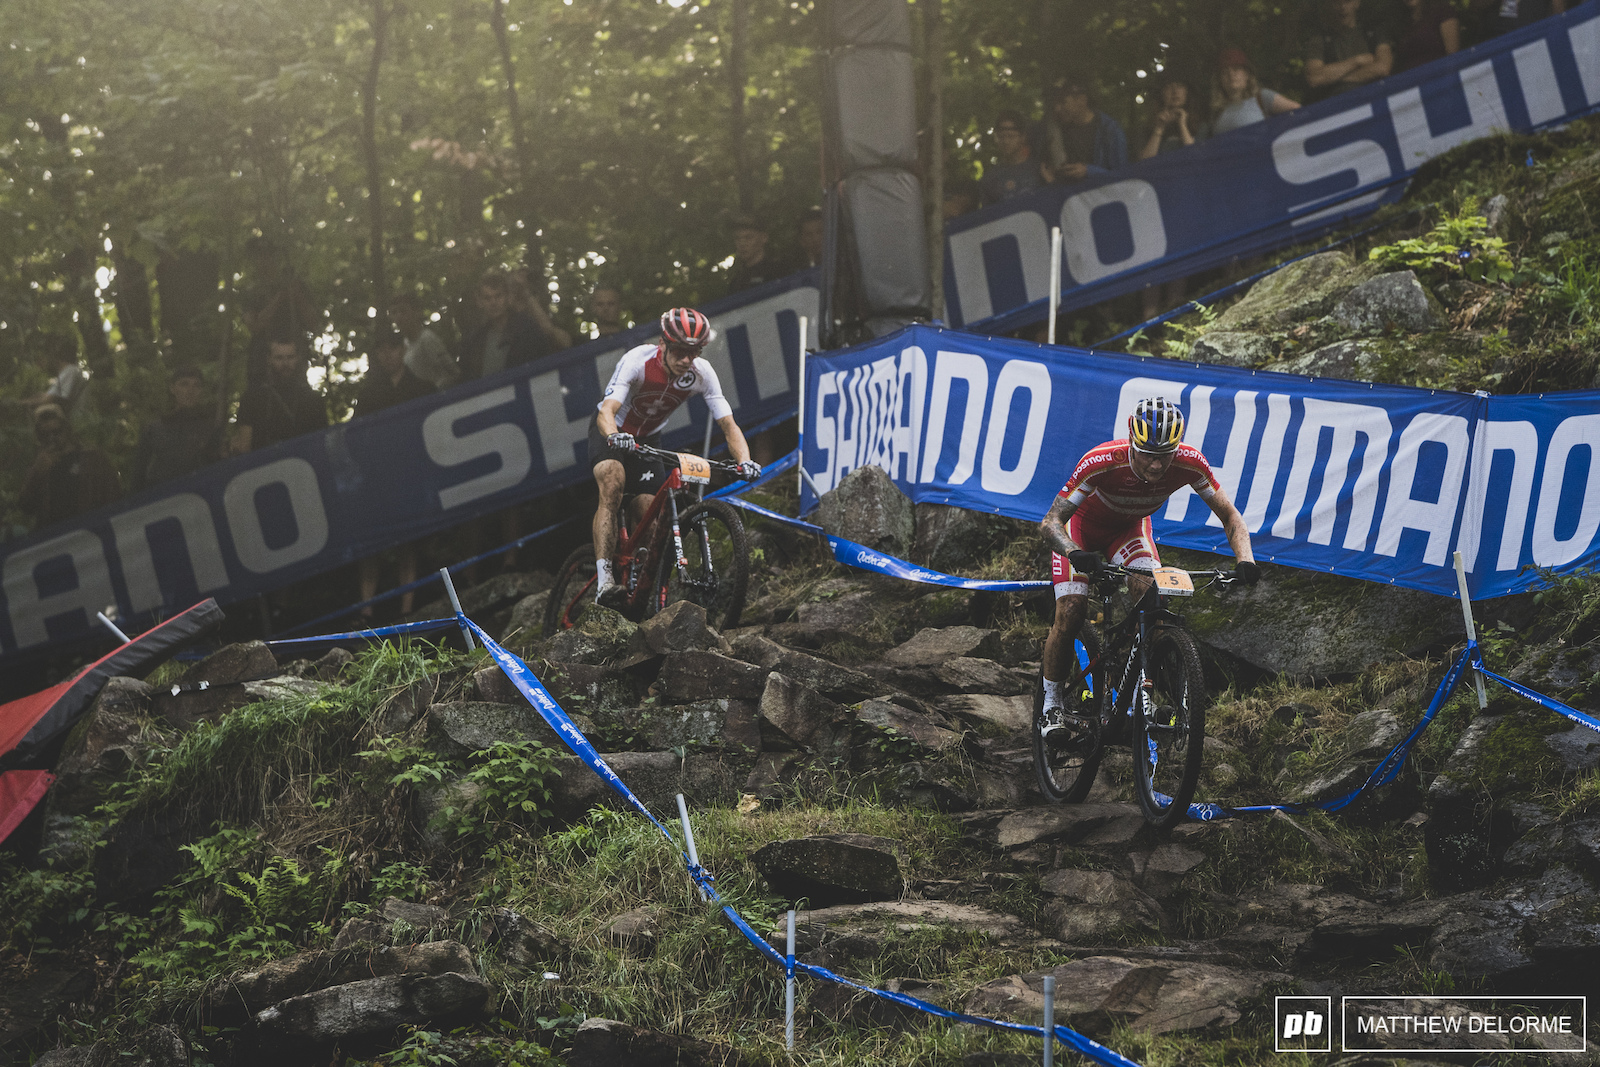 Simon Andreassen had bad luck on the rocks of MSA today and had to settle for seventh.